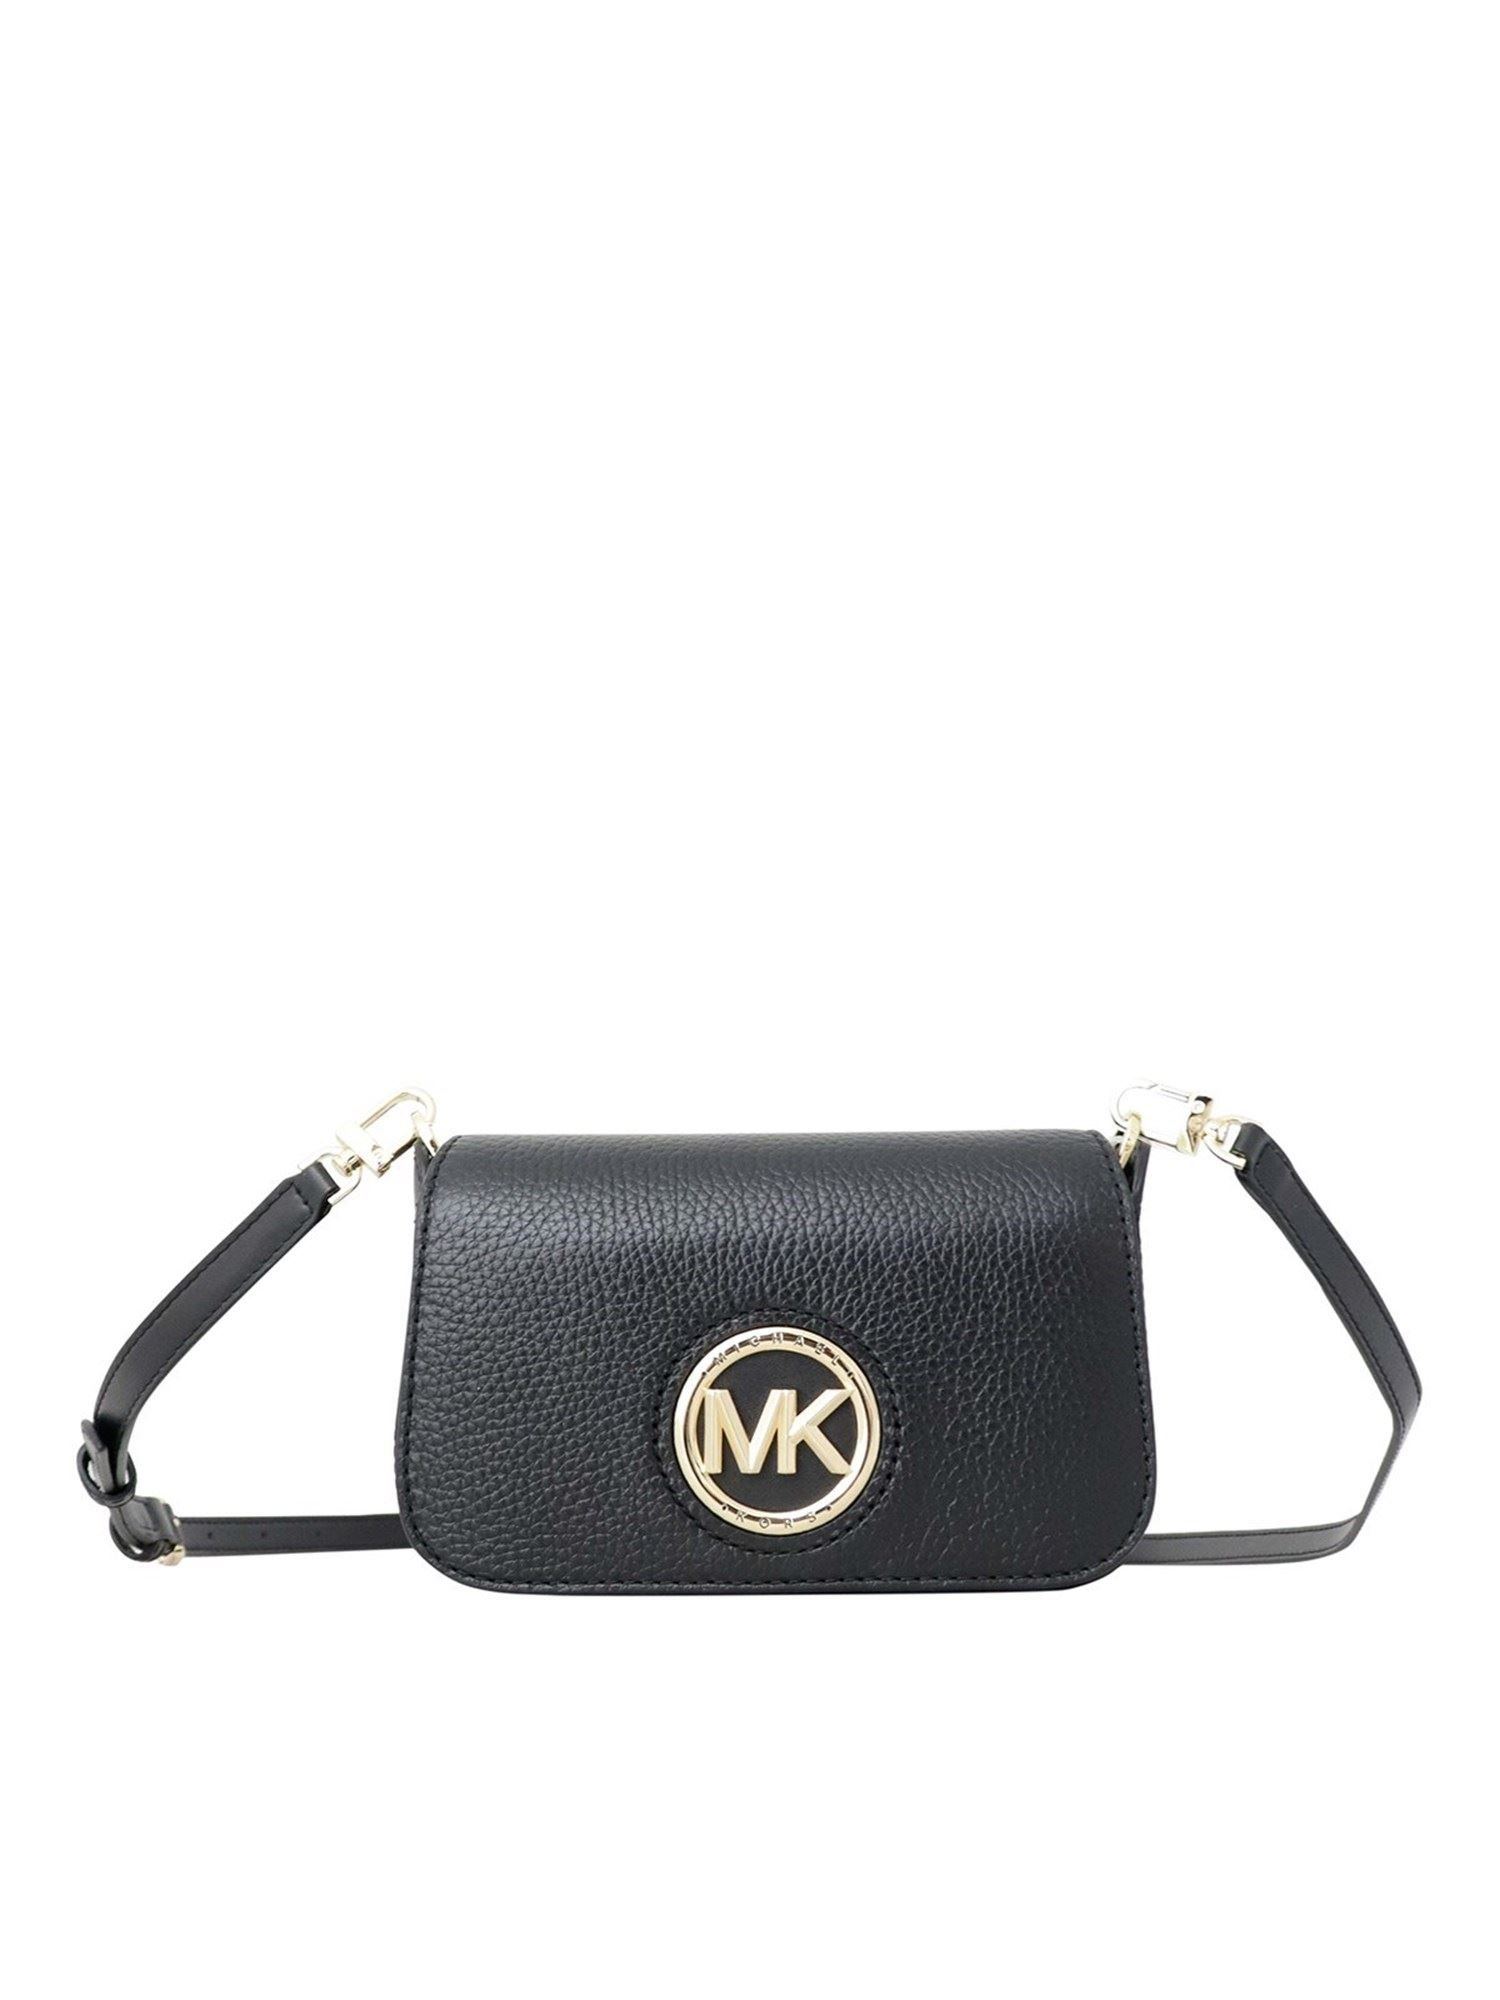 Michael Kors SAMIRA CROSS BODY BAG IN BLACK